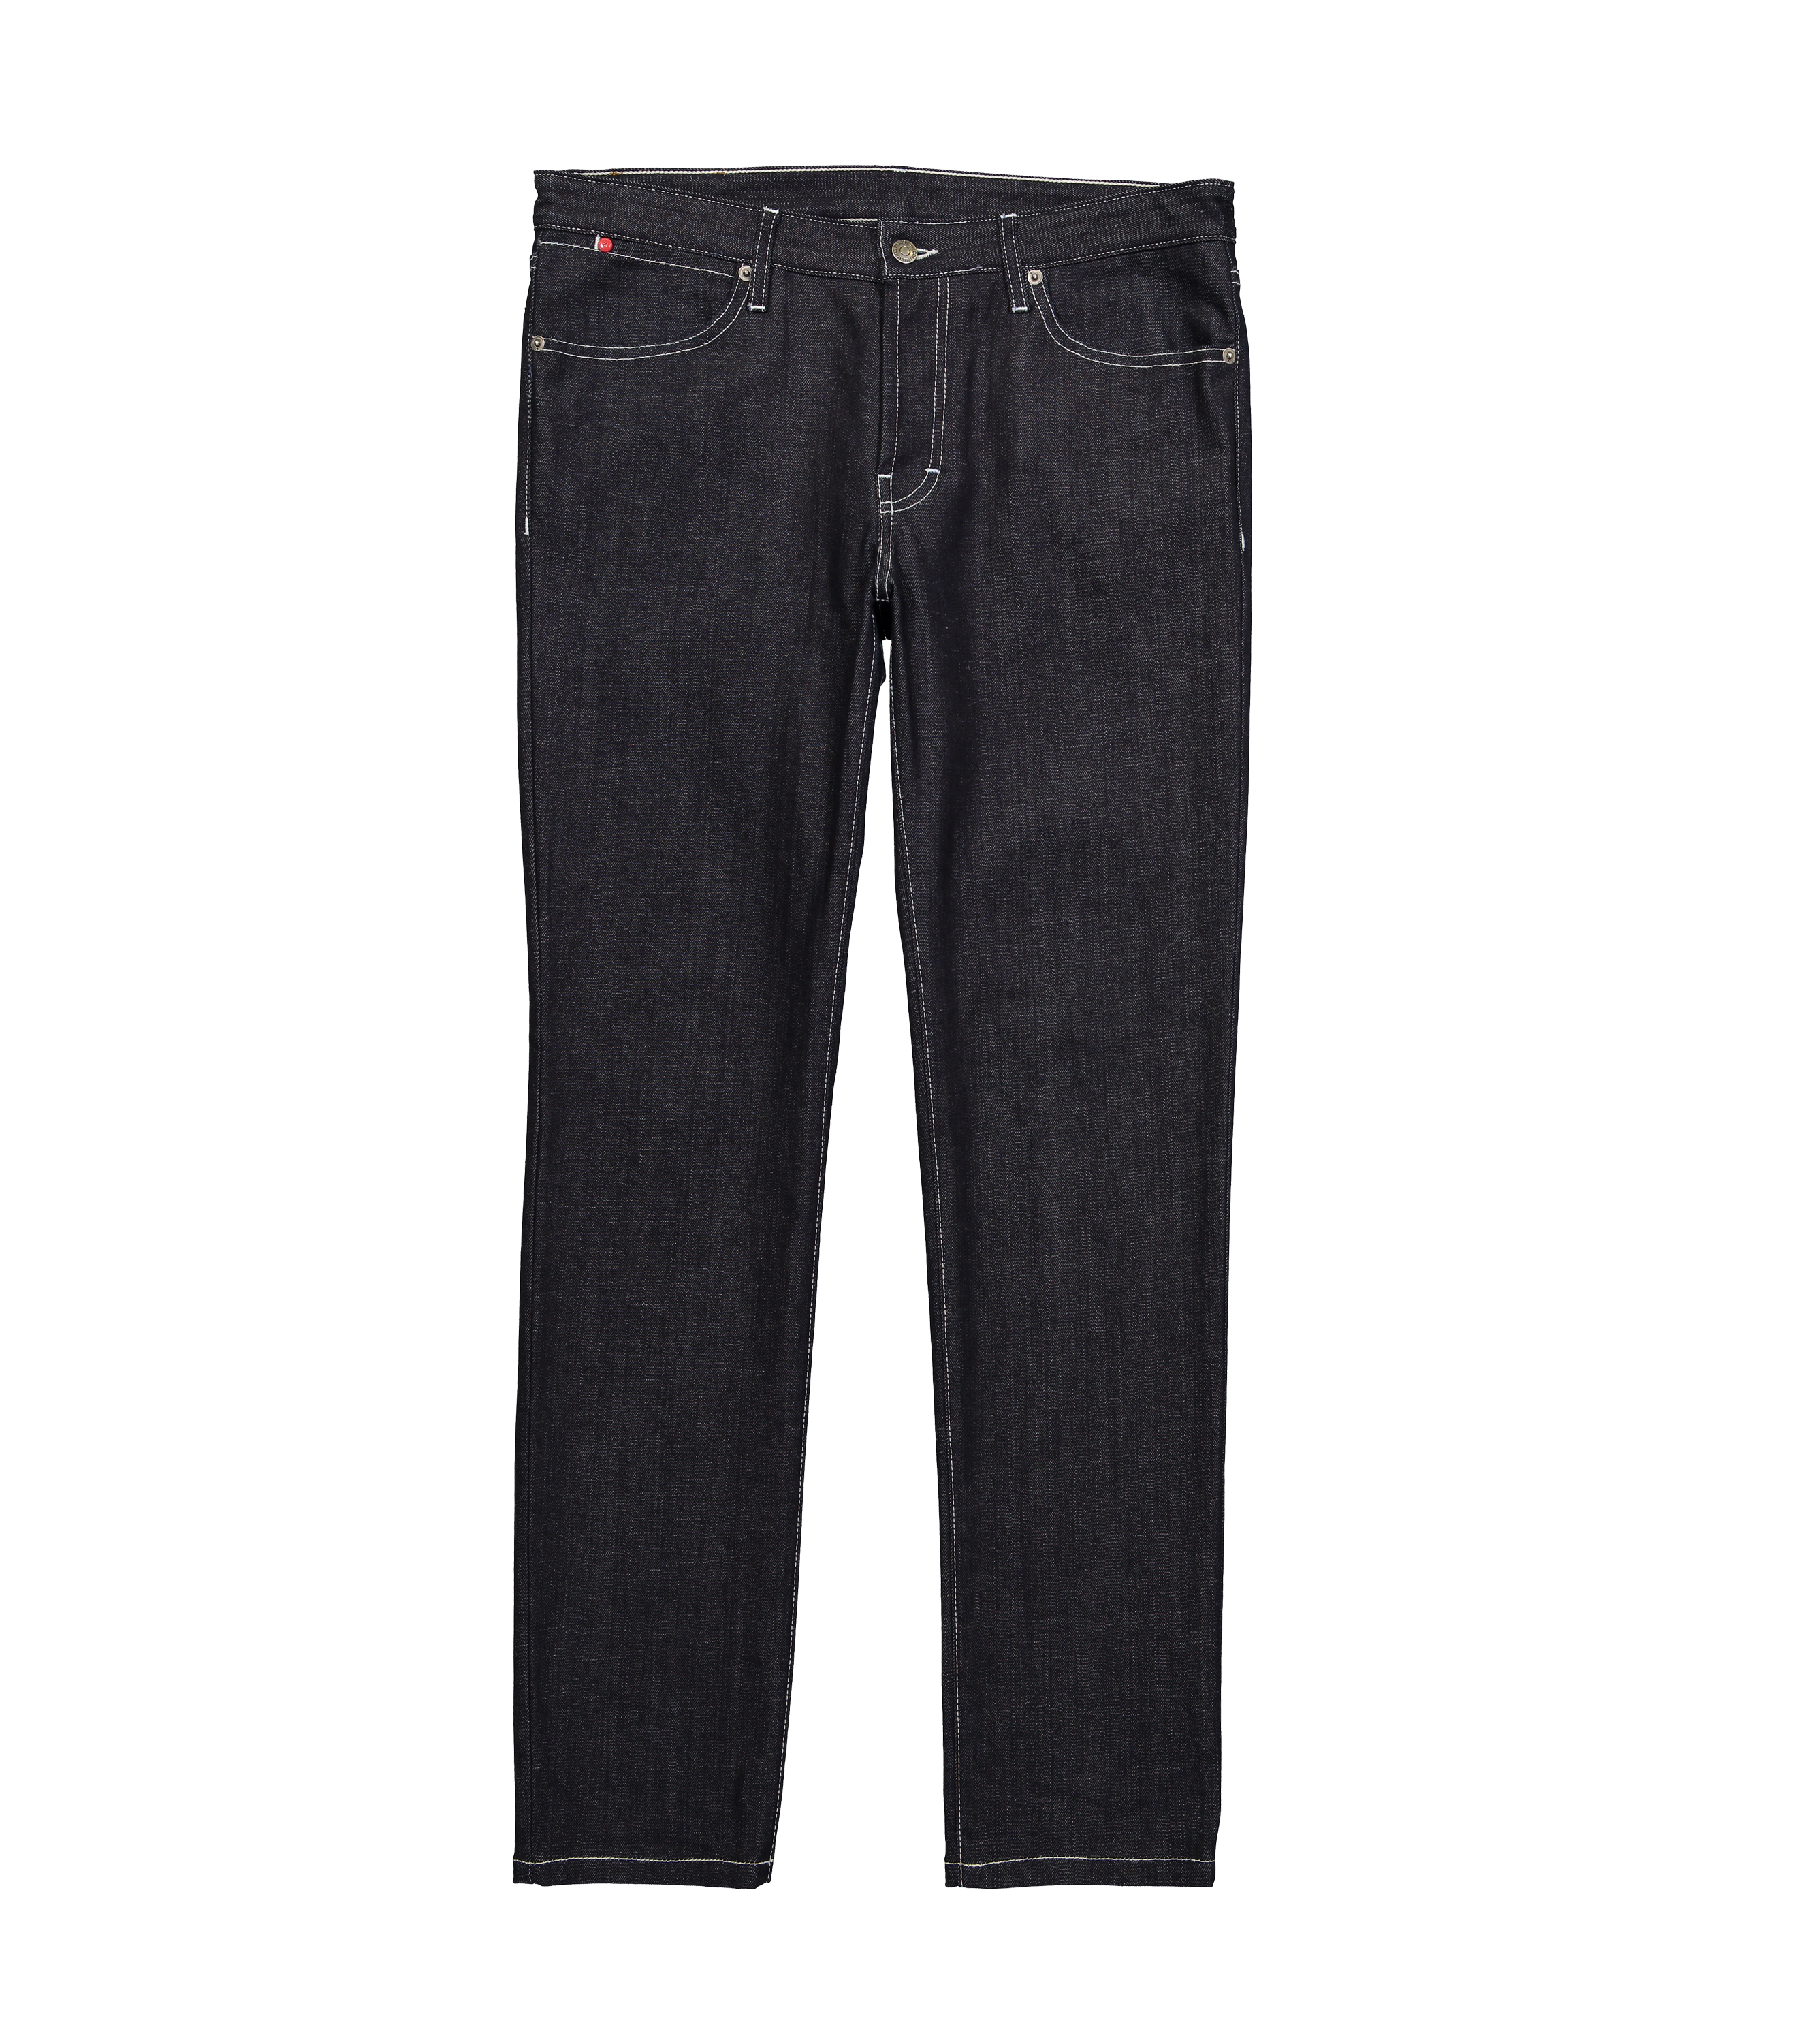 PANTS  GN DENIM  - Raw denim